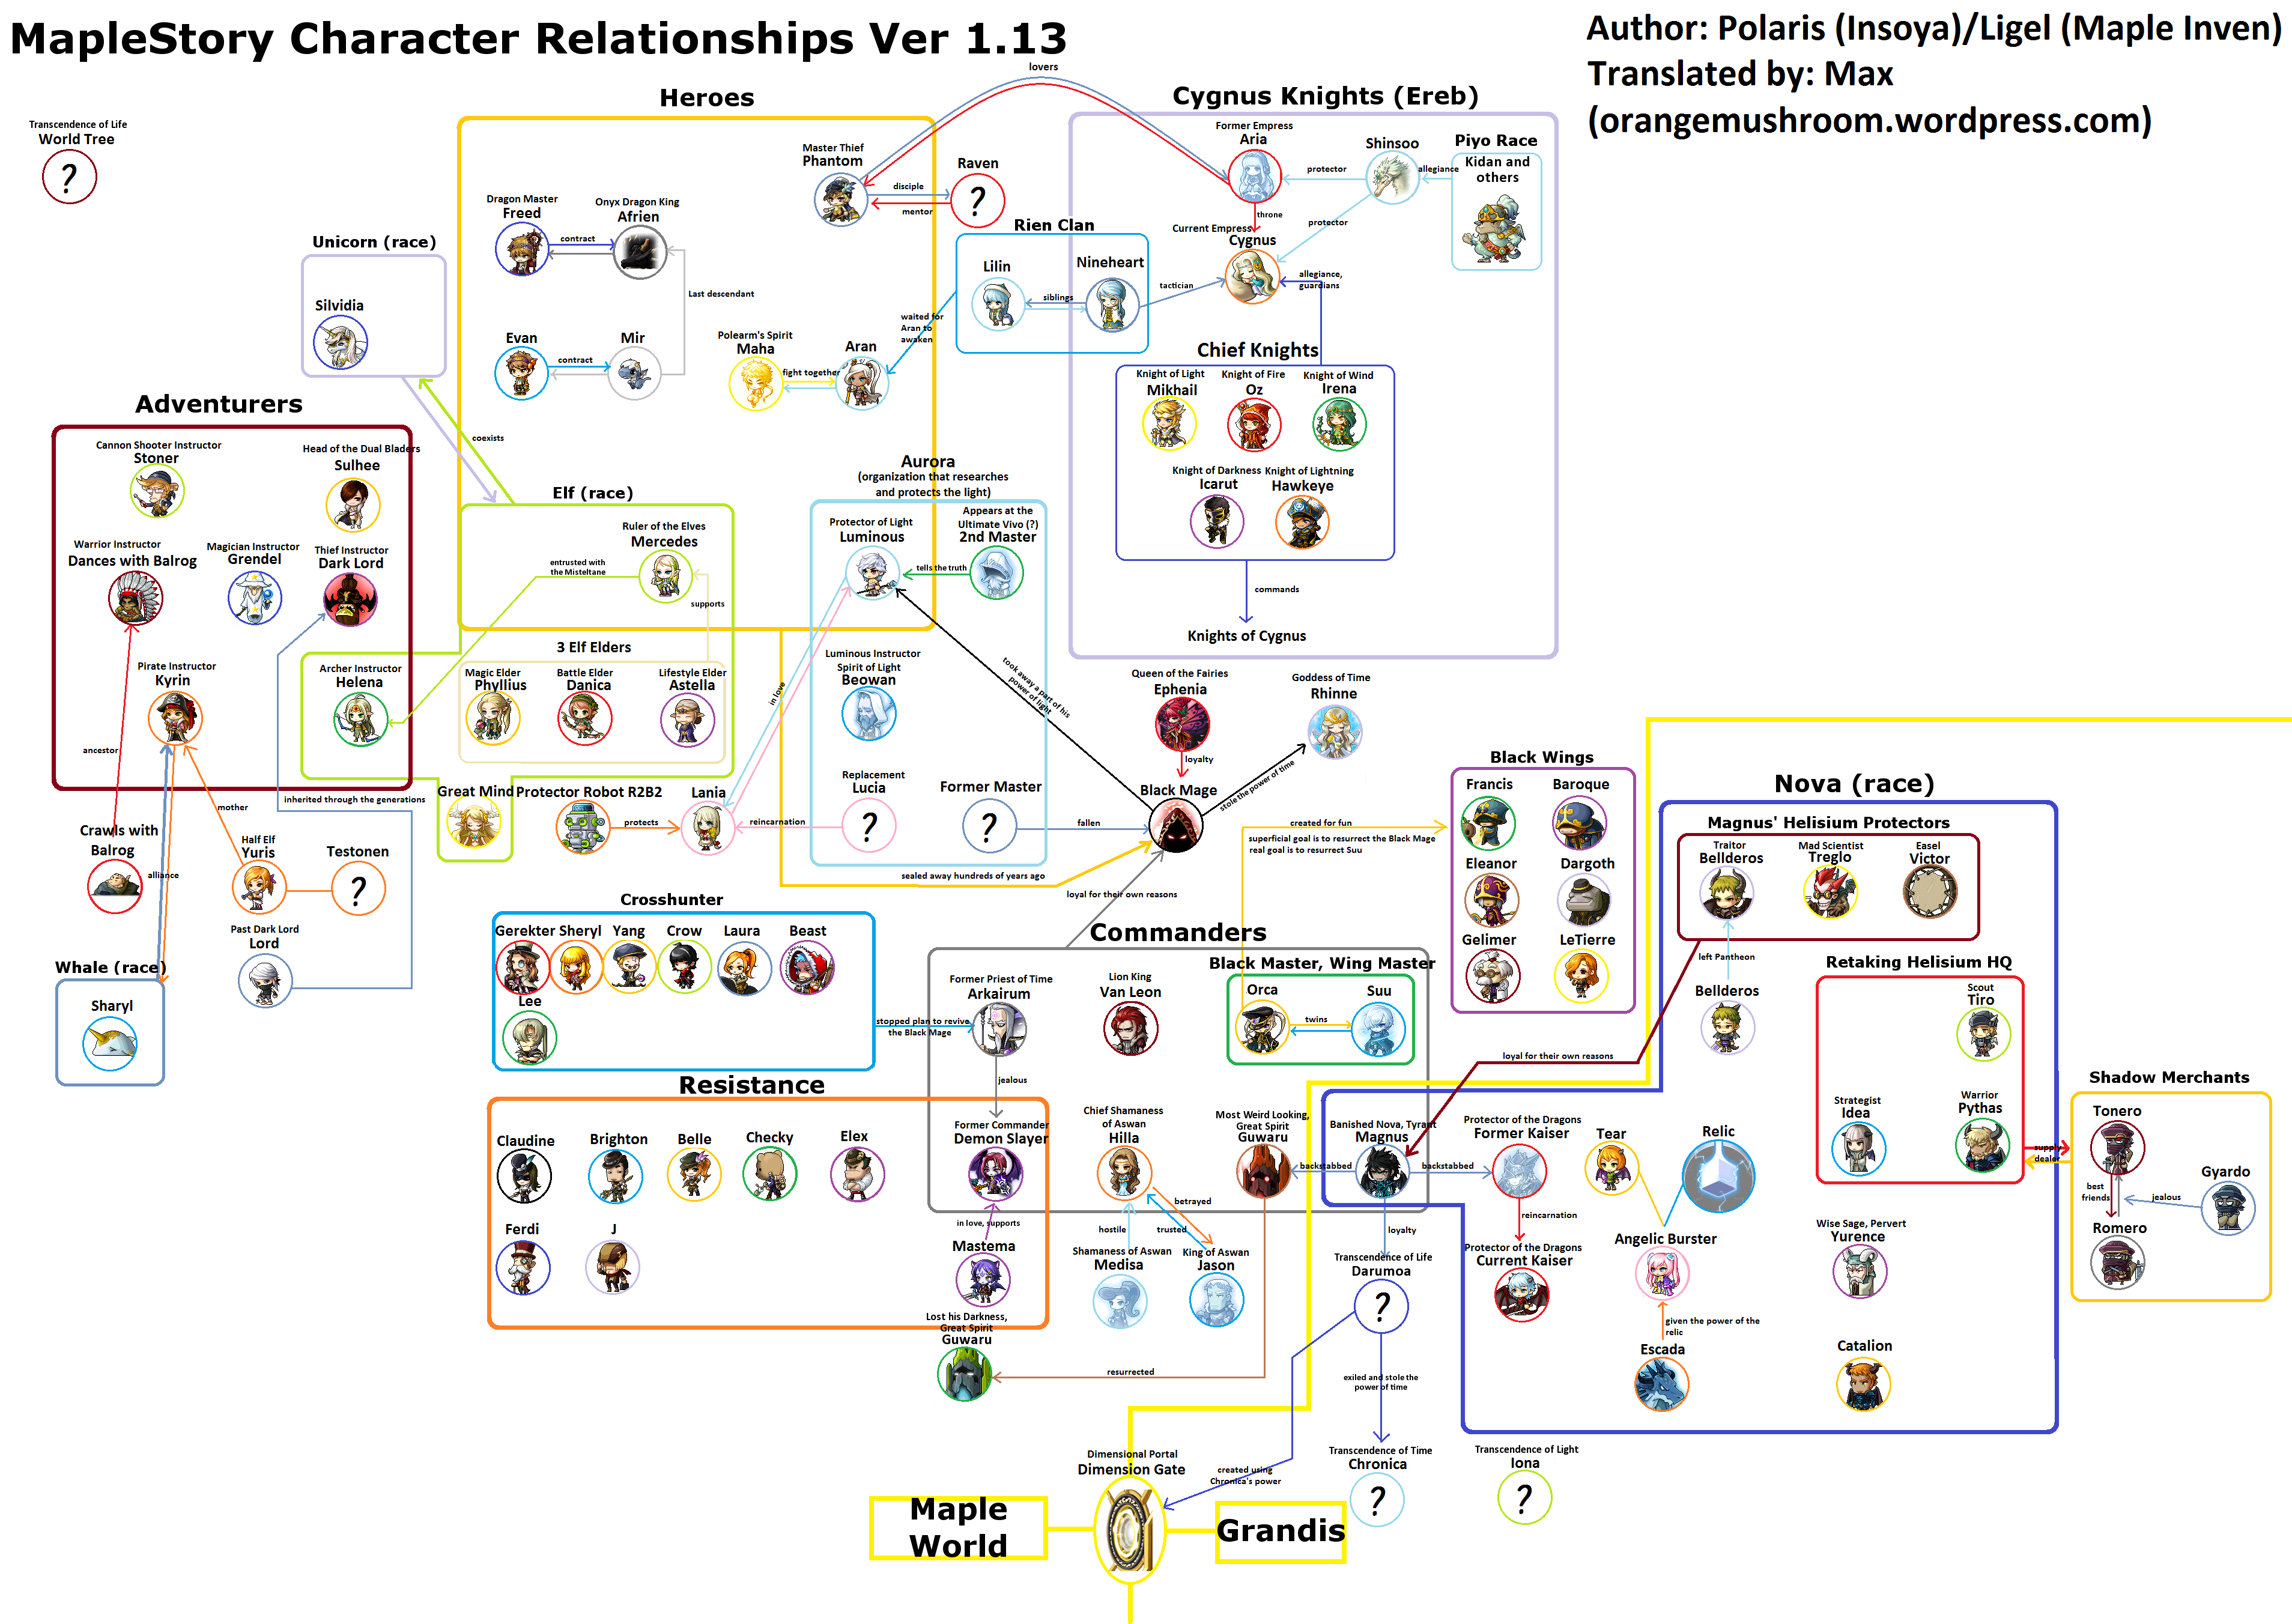 Maple Story Character Relationships Maplestory-character-relationships-ver-1-13